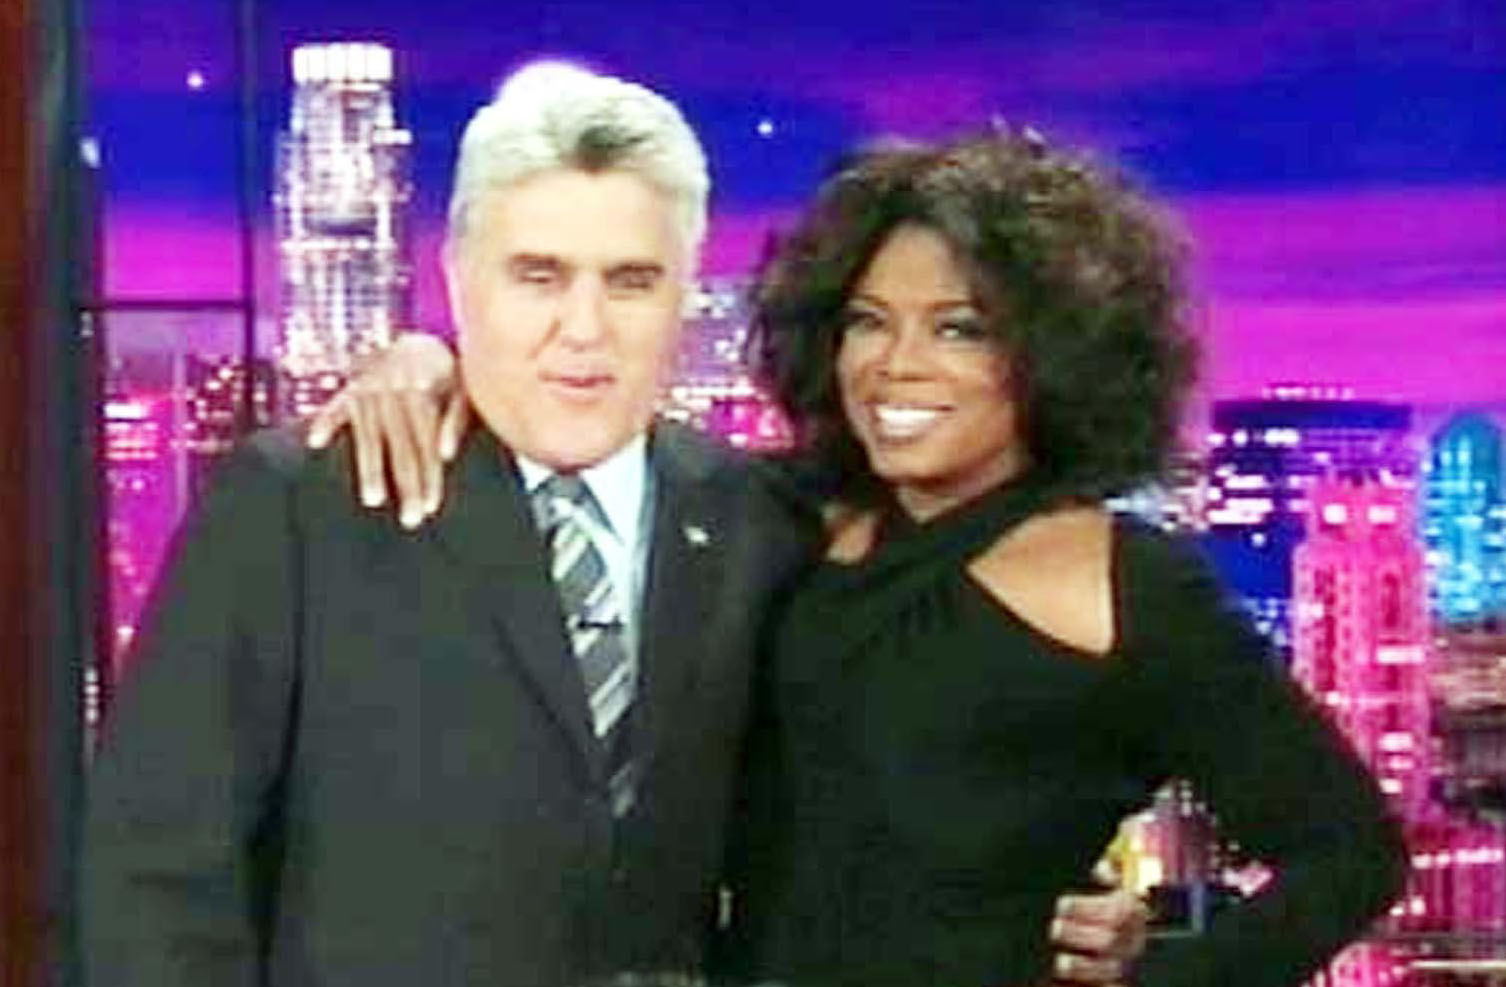 Oprah Winfrey with Jay Leno on Late Night With Jay Leno in 2004